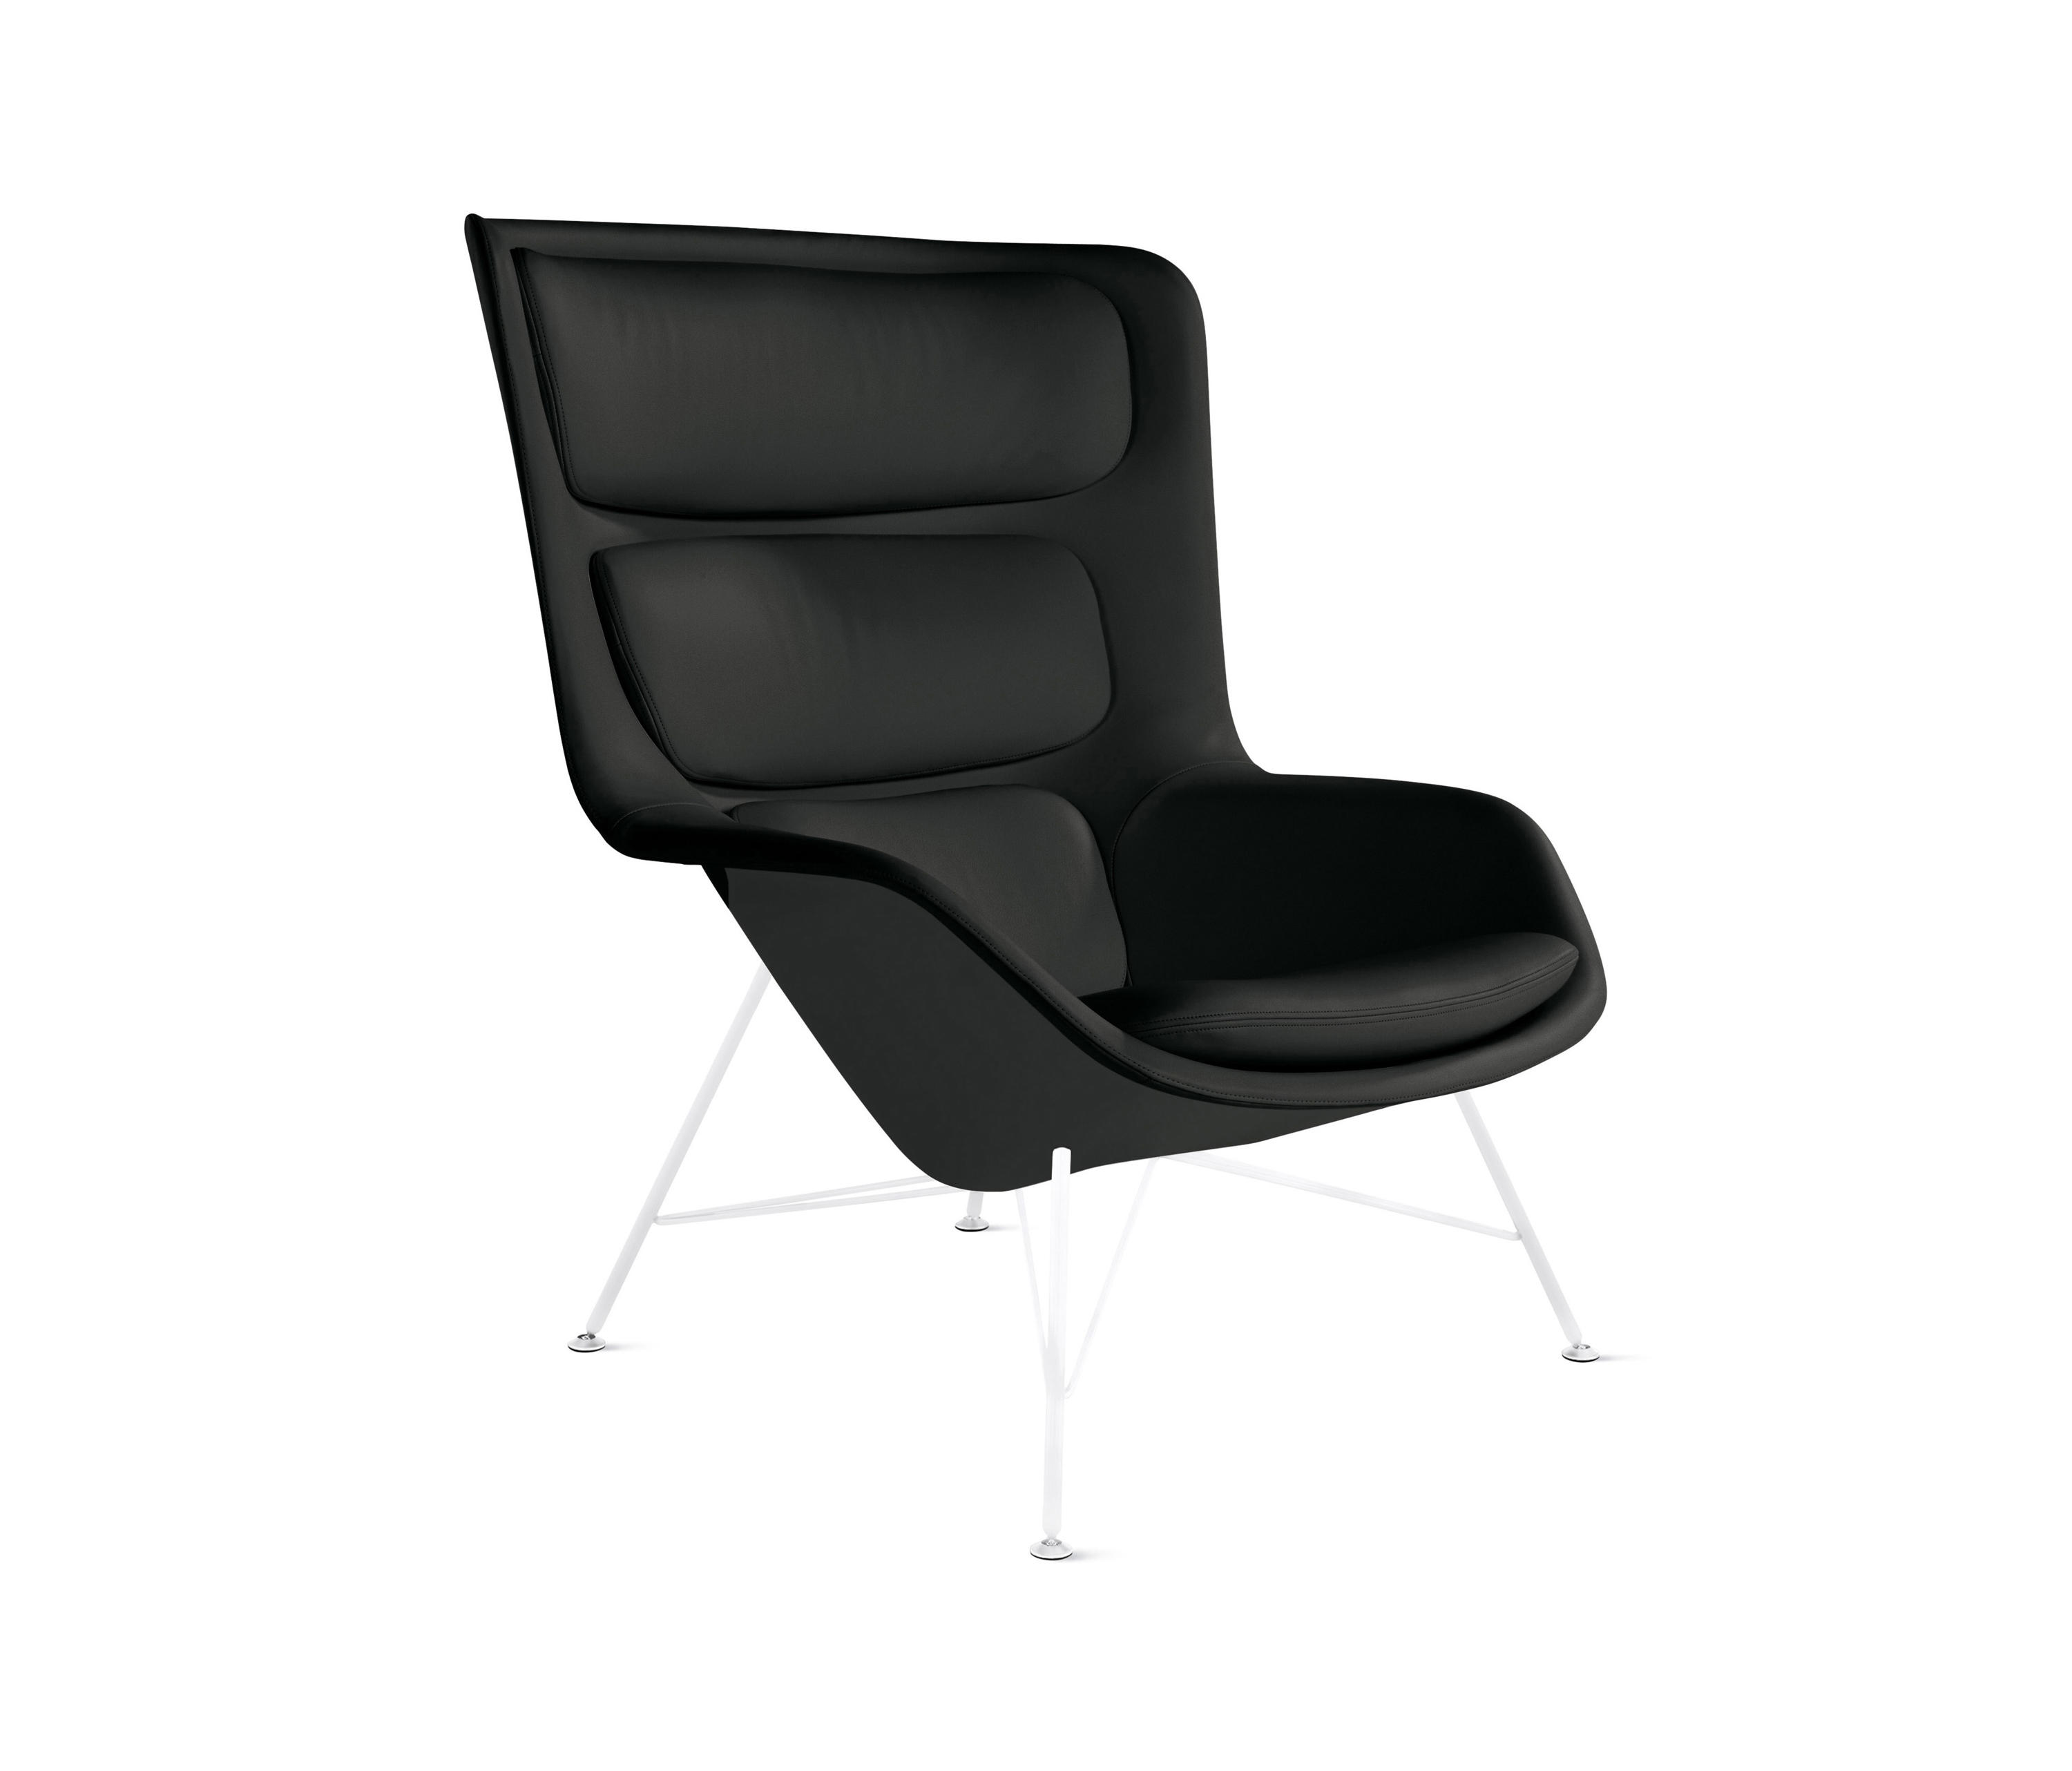 leather lounge style black mg chair st danish modern